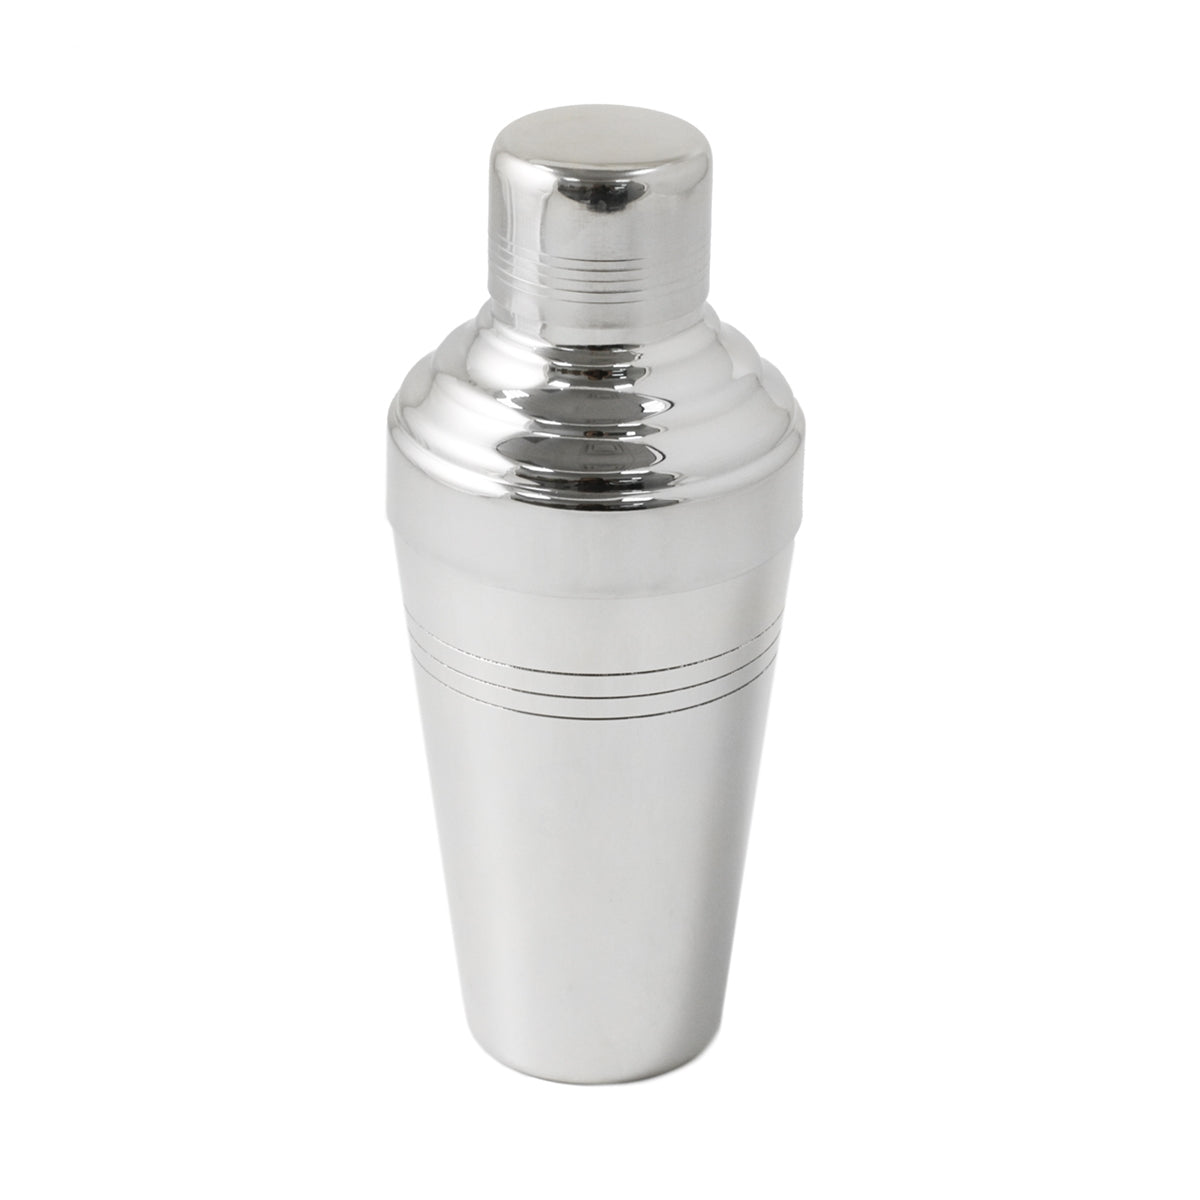 Yukiwa Baron 3-Piece Cocktail Shaker 410ml (13.8 oz)